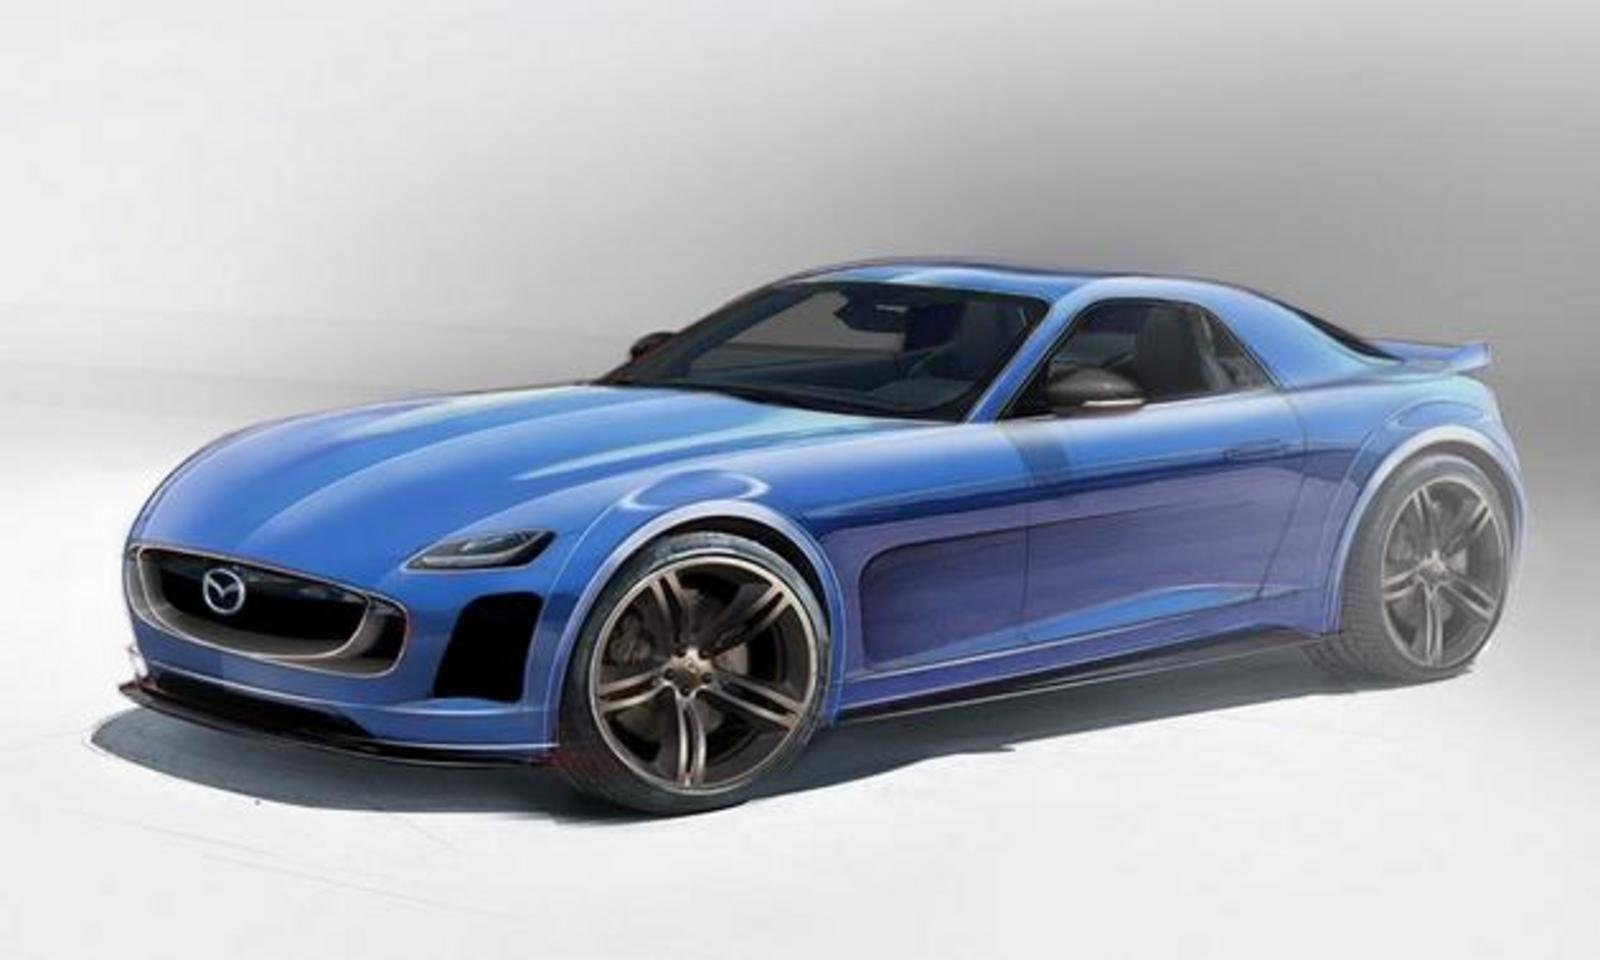 new mazda rx 7 could get 250 horsepower rotary engine news top speed. Black Bedroom Furniture Sets. Home Design Ideas